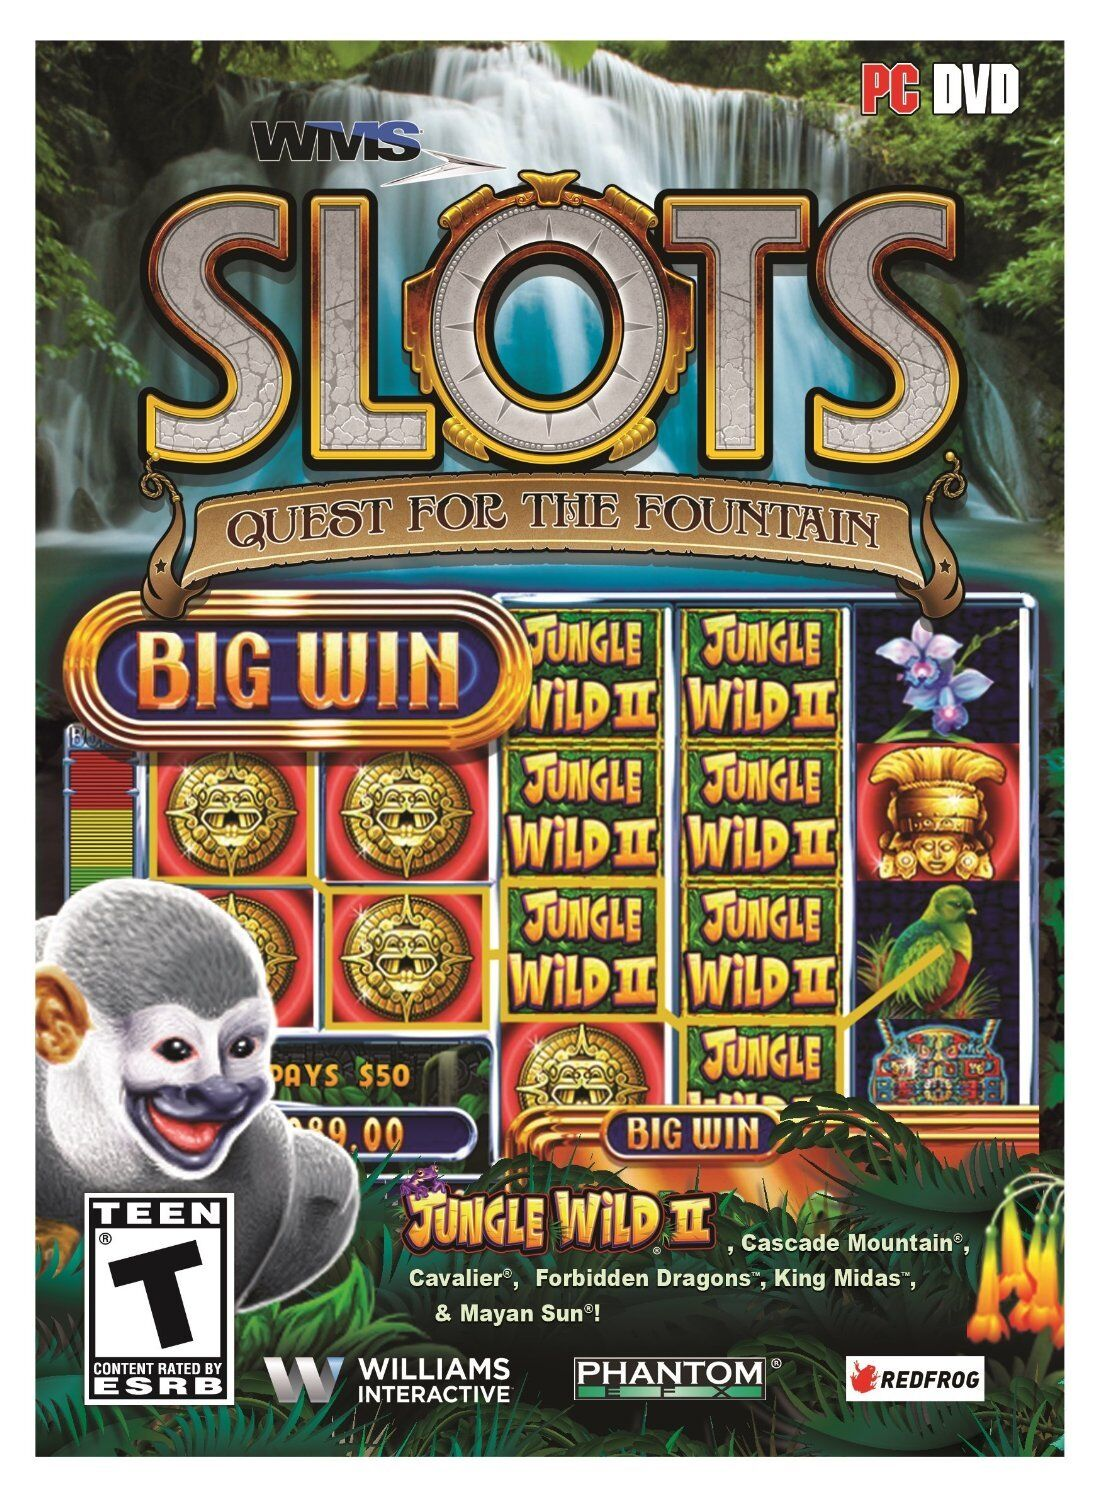 Computer Games - WMS Slots Quest For The Fountain PC Games Window 10 8 7 XP Computer slot machine